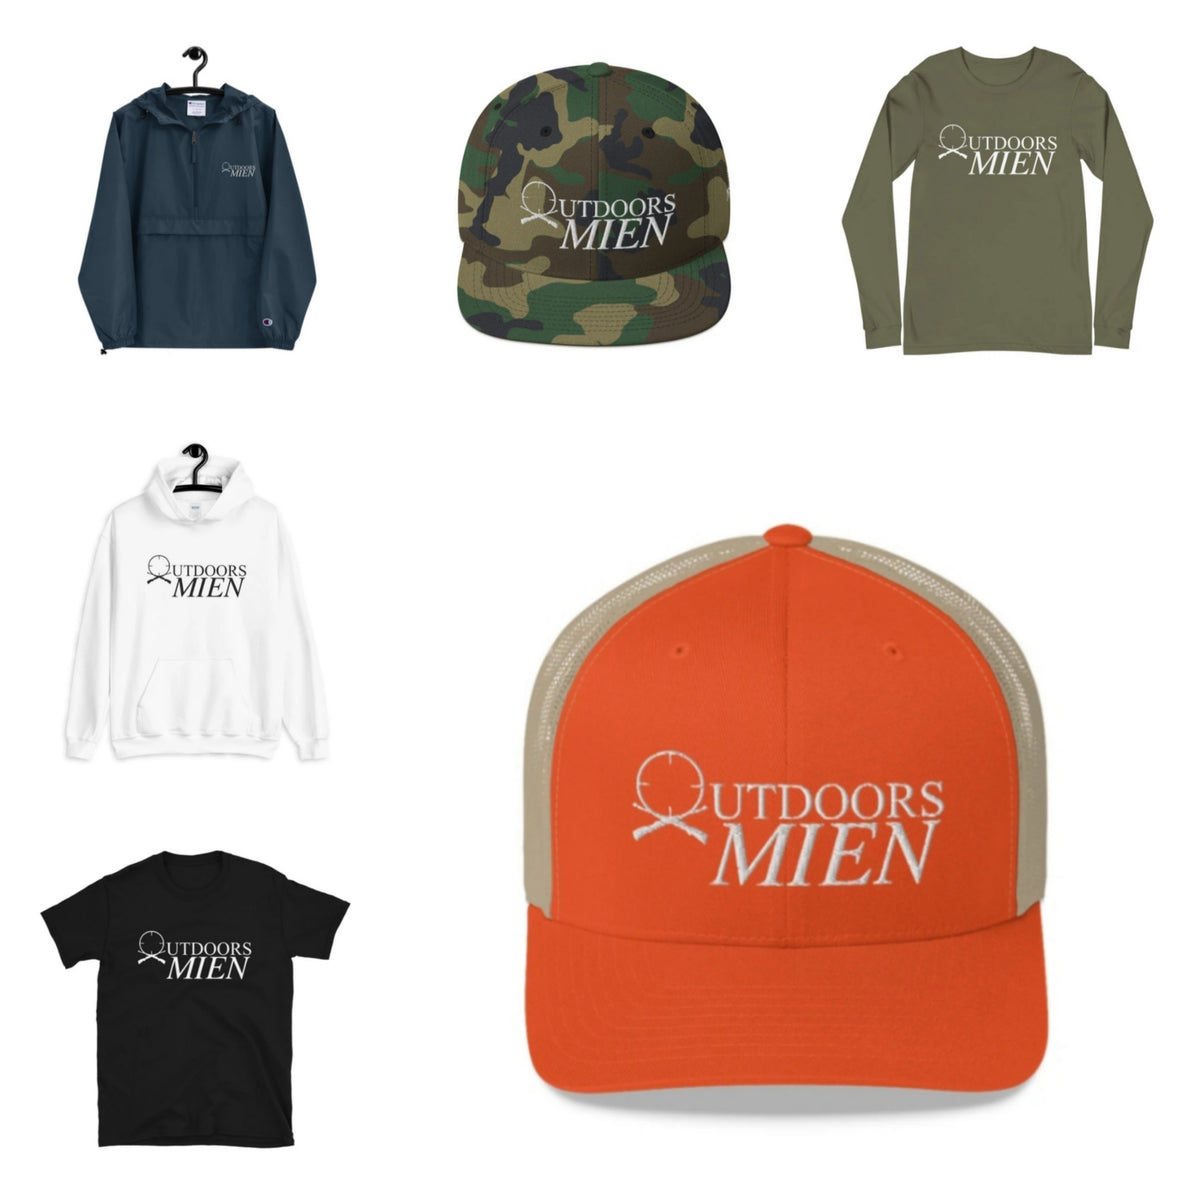 All Things Mien Iu Mien Apparel Fishermien Mien Outdoors And More All Things Mien